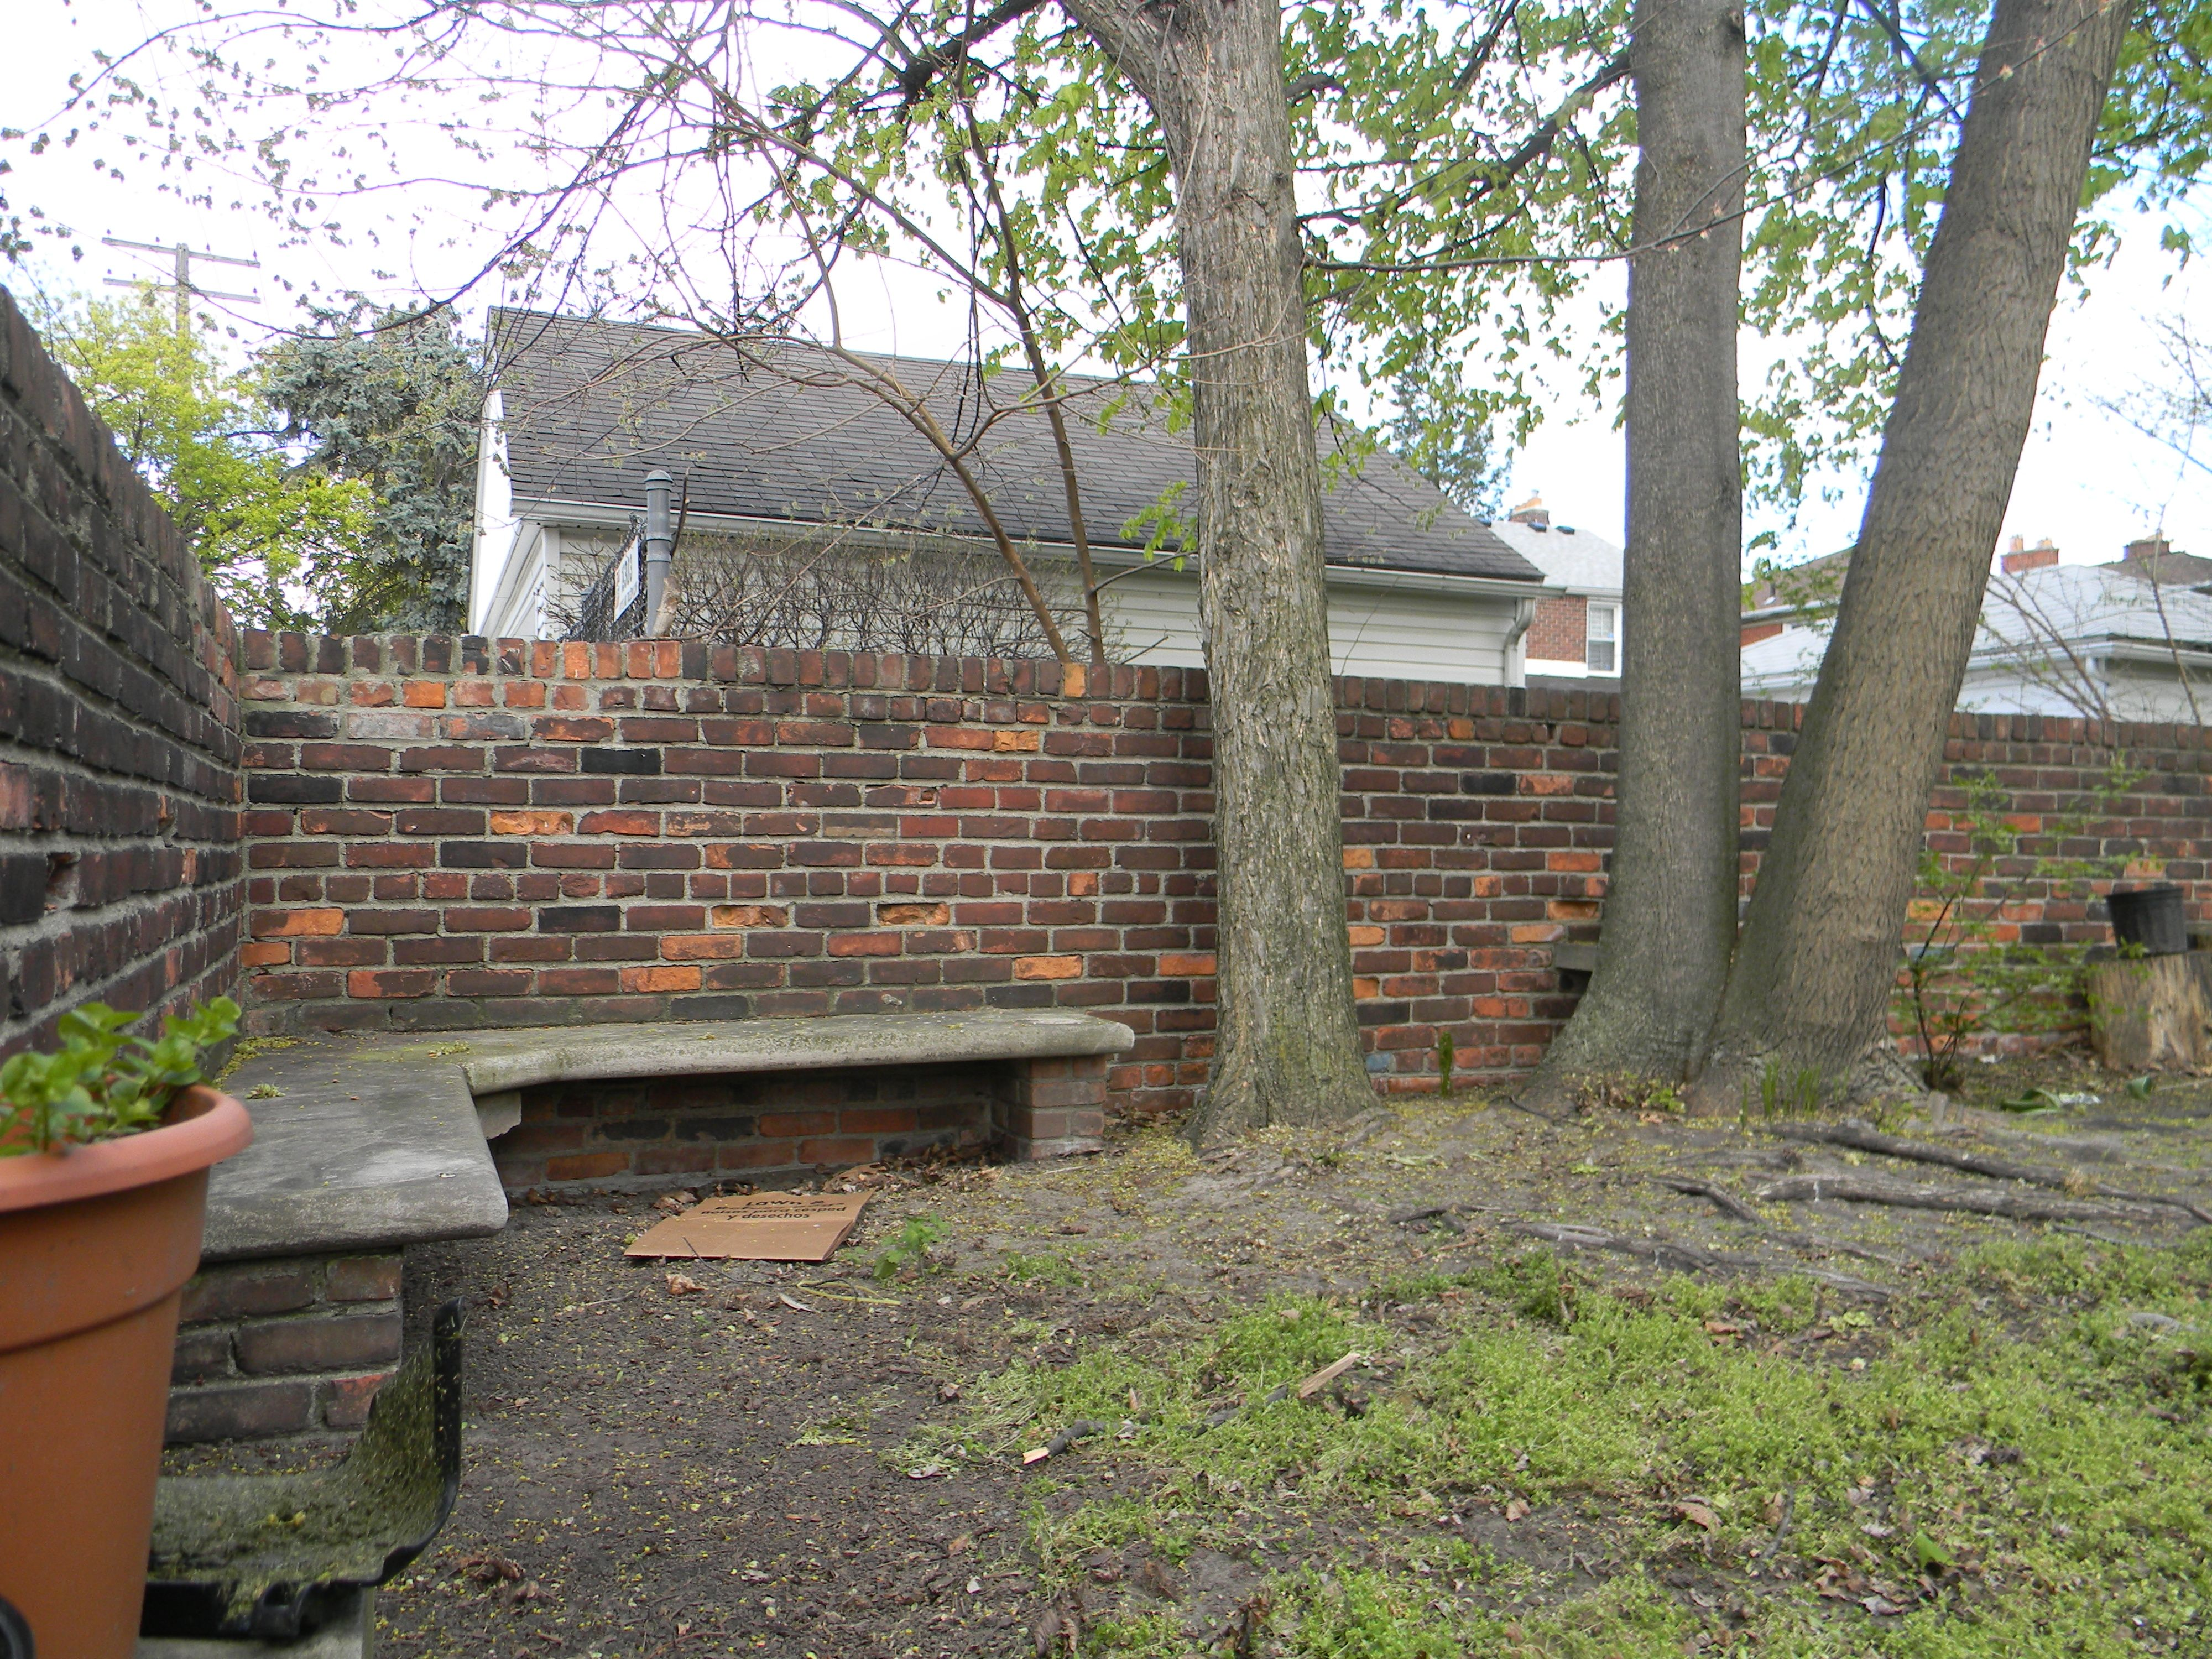 Benches And Shelves For Pots Were Built Into The Backyard Garden Wall.